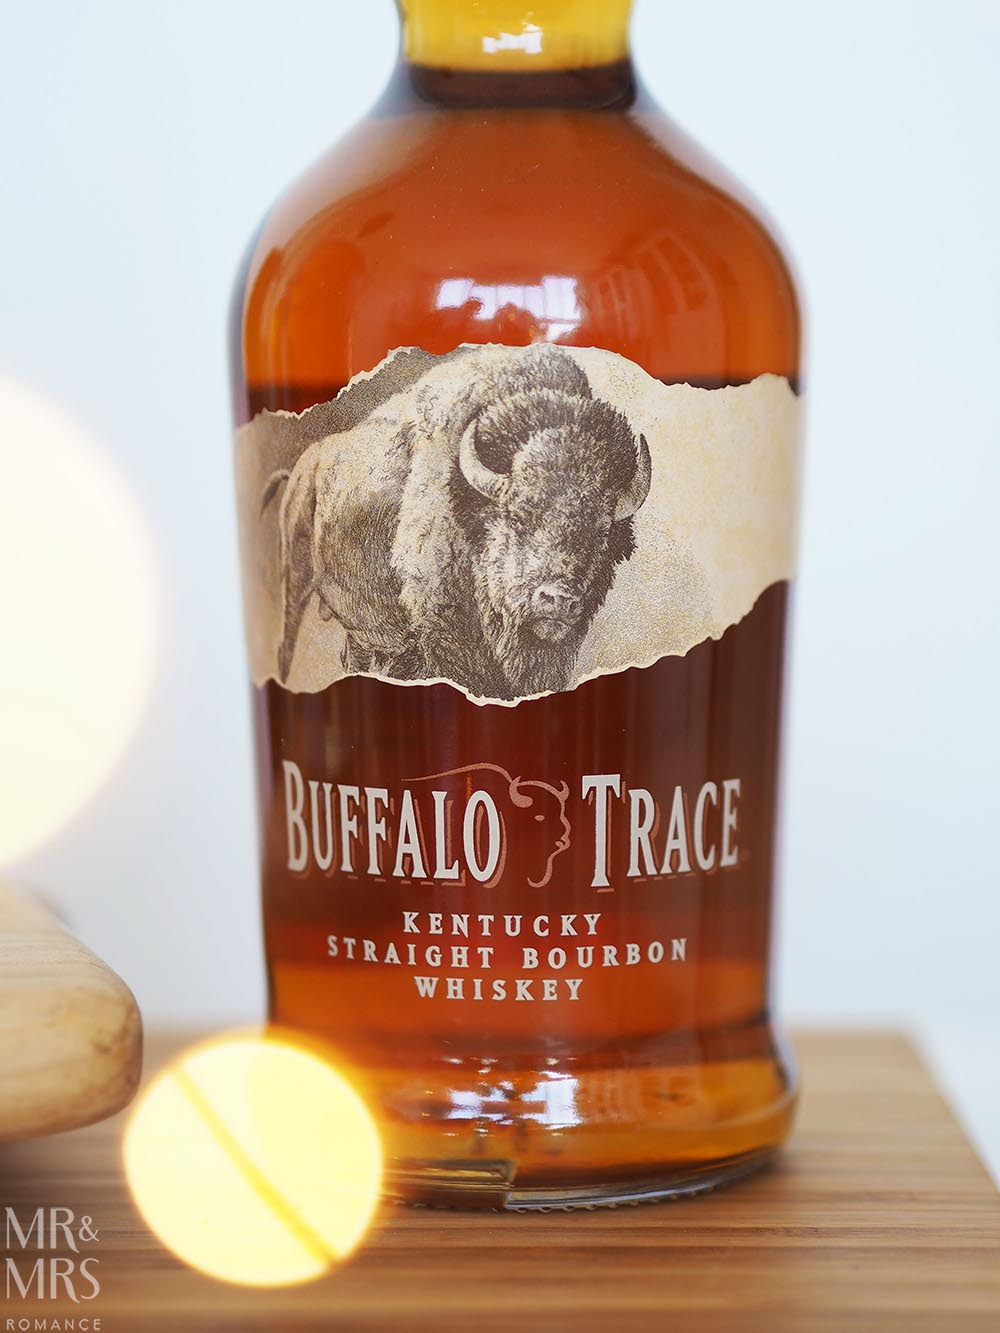 Last-minute Christmas gifts - Buffalo Trace Bourbon